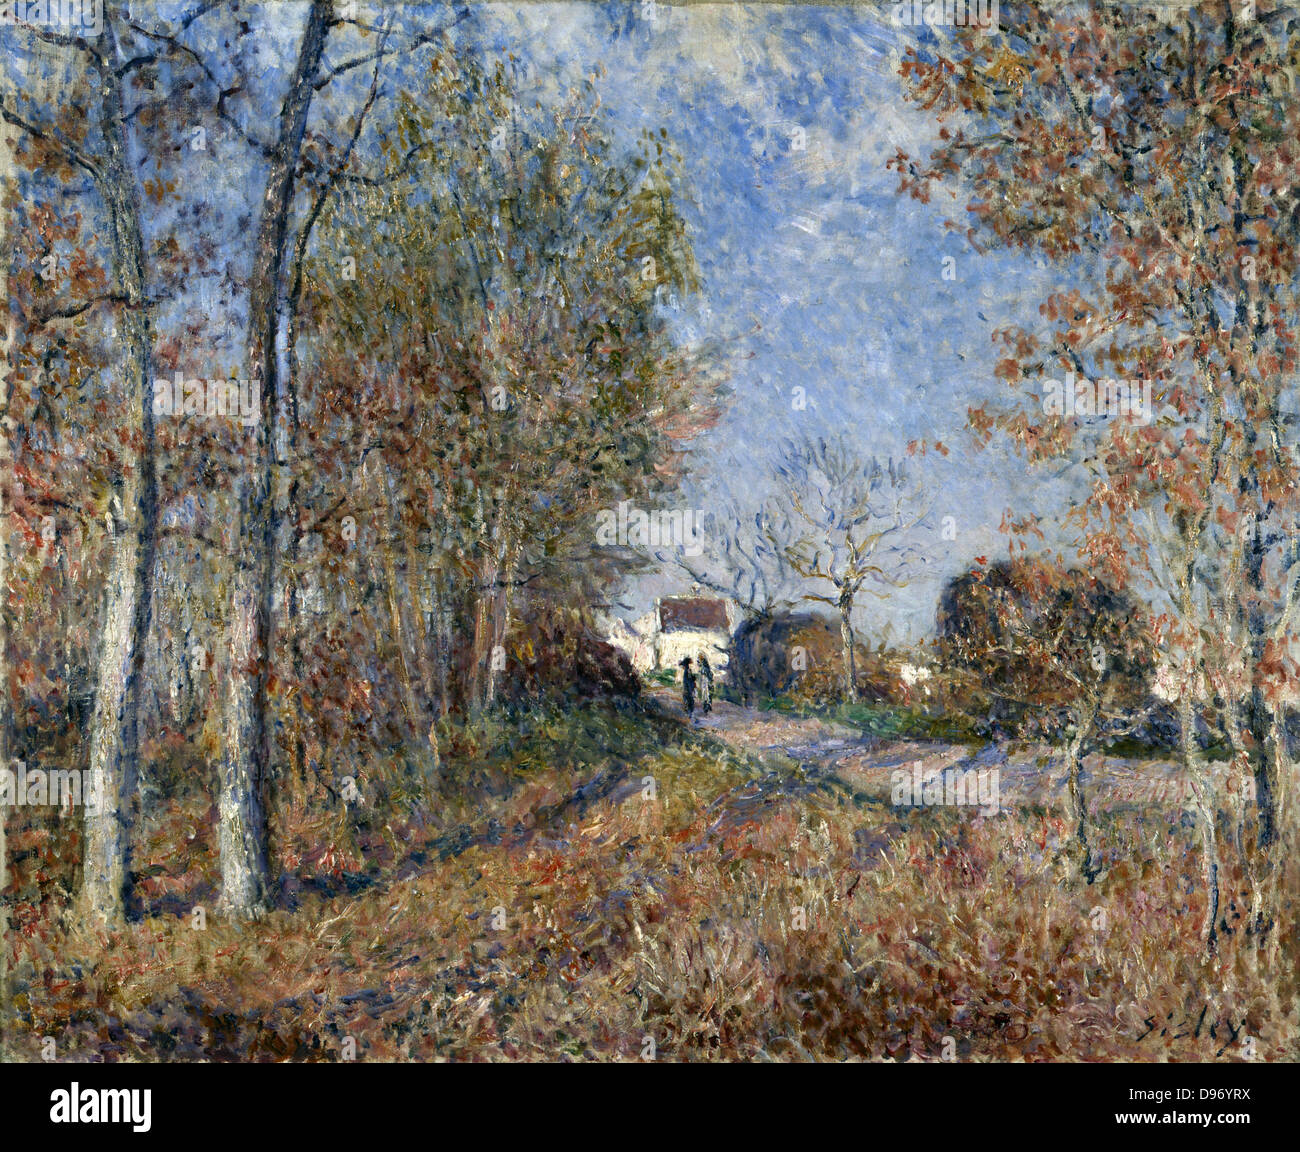 A Corner of the Woods at Sablon' 1883: Alfred Sisley (1839-1899) French painter. Oil on canvas. - Stock Image